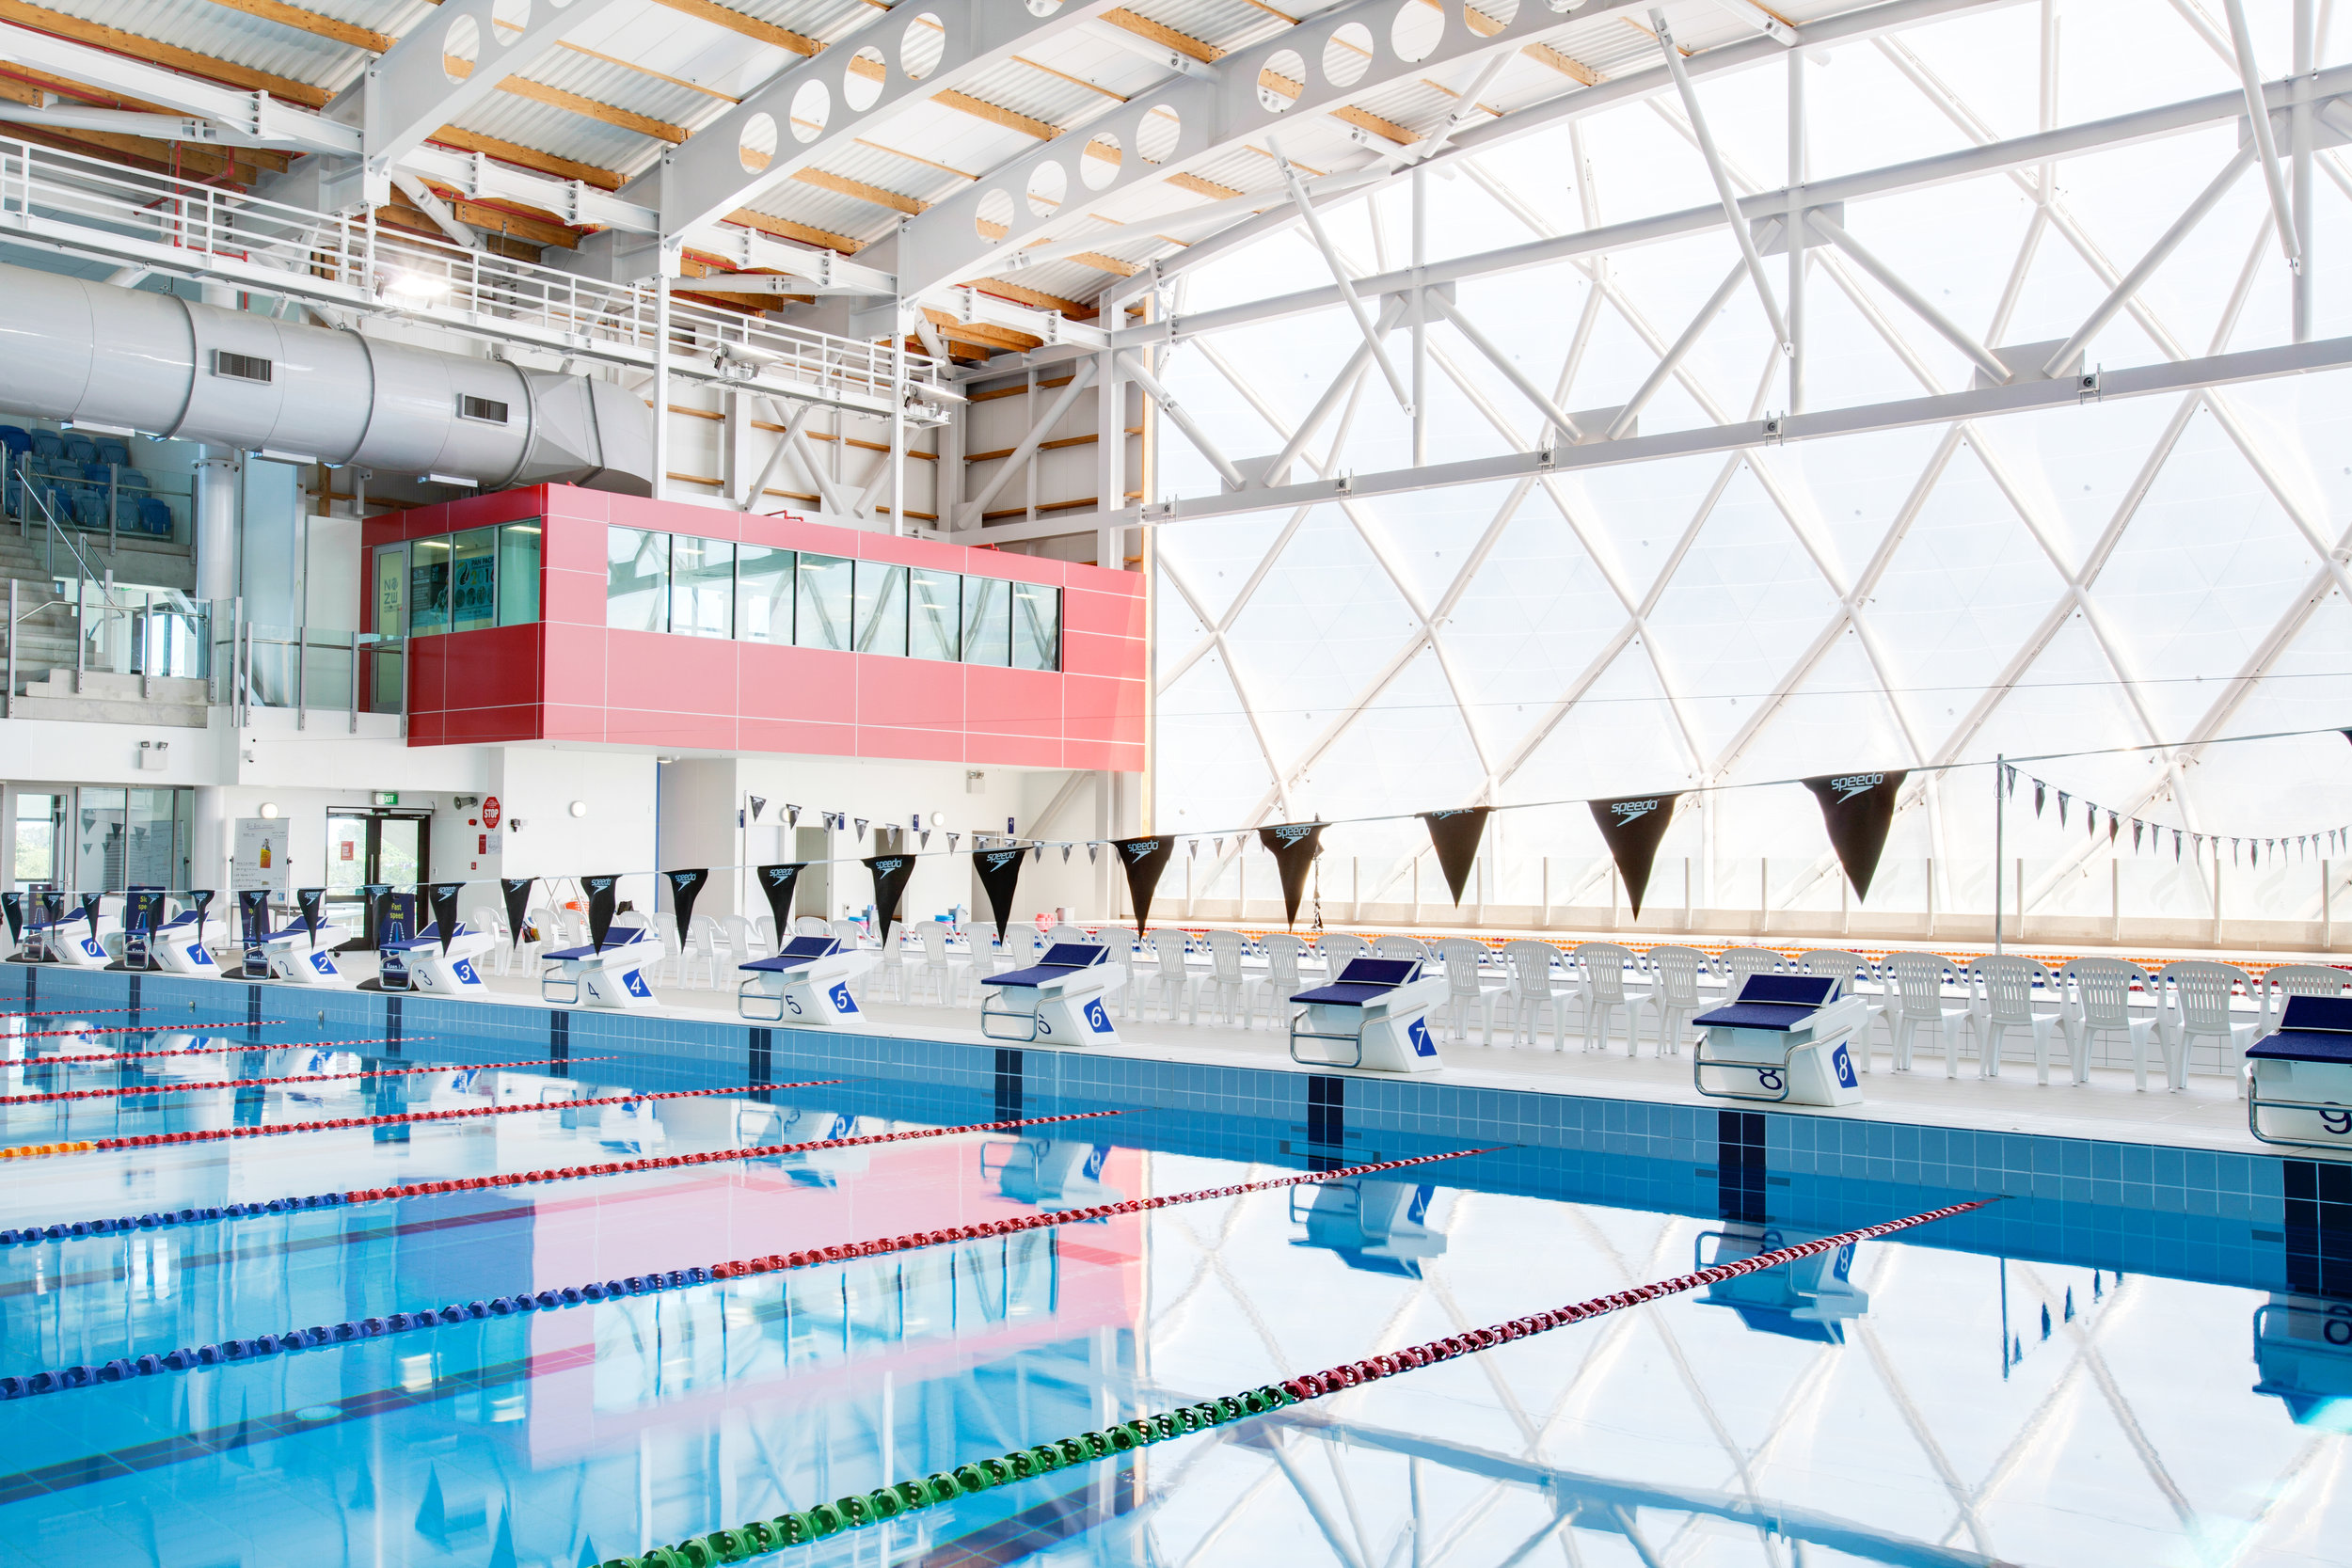 AUT Millenium Aquatic Centre, Feature ETFE Facade